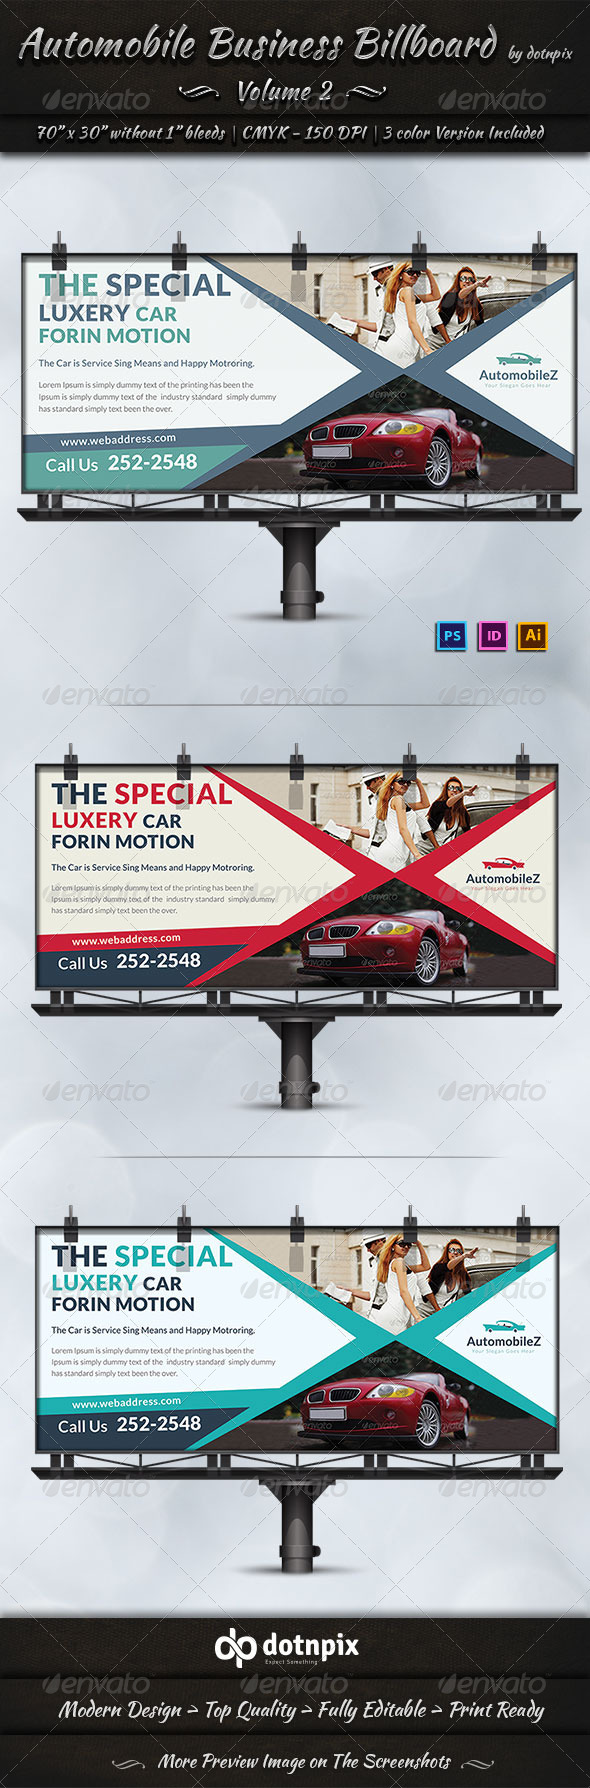 Automobile Business Billboard | Volume 2 - Signage Print Templates